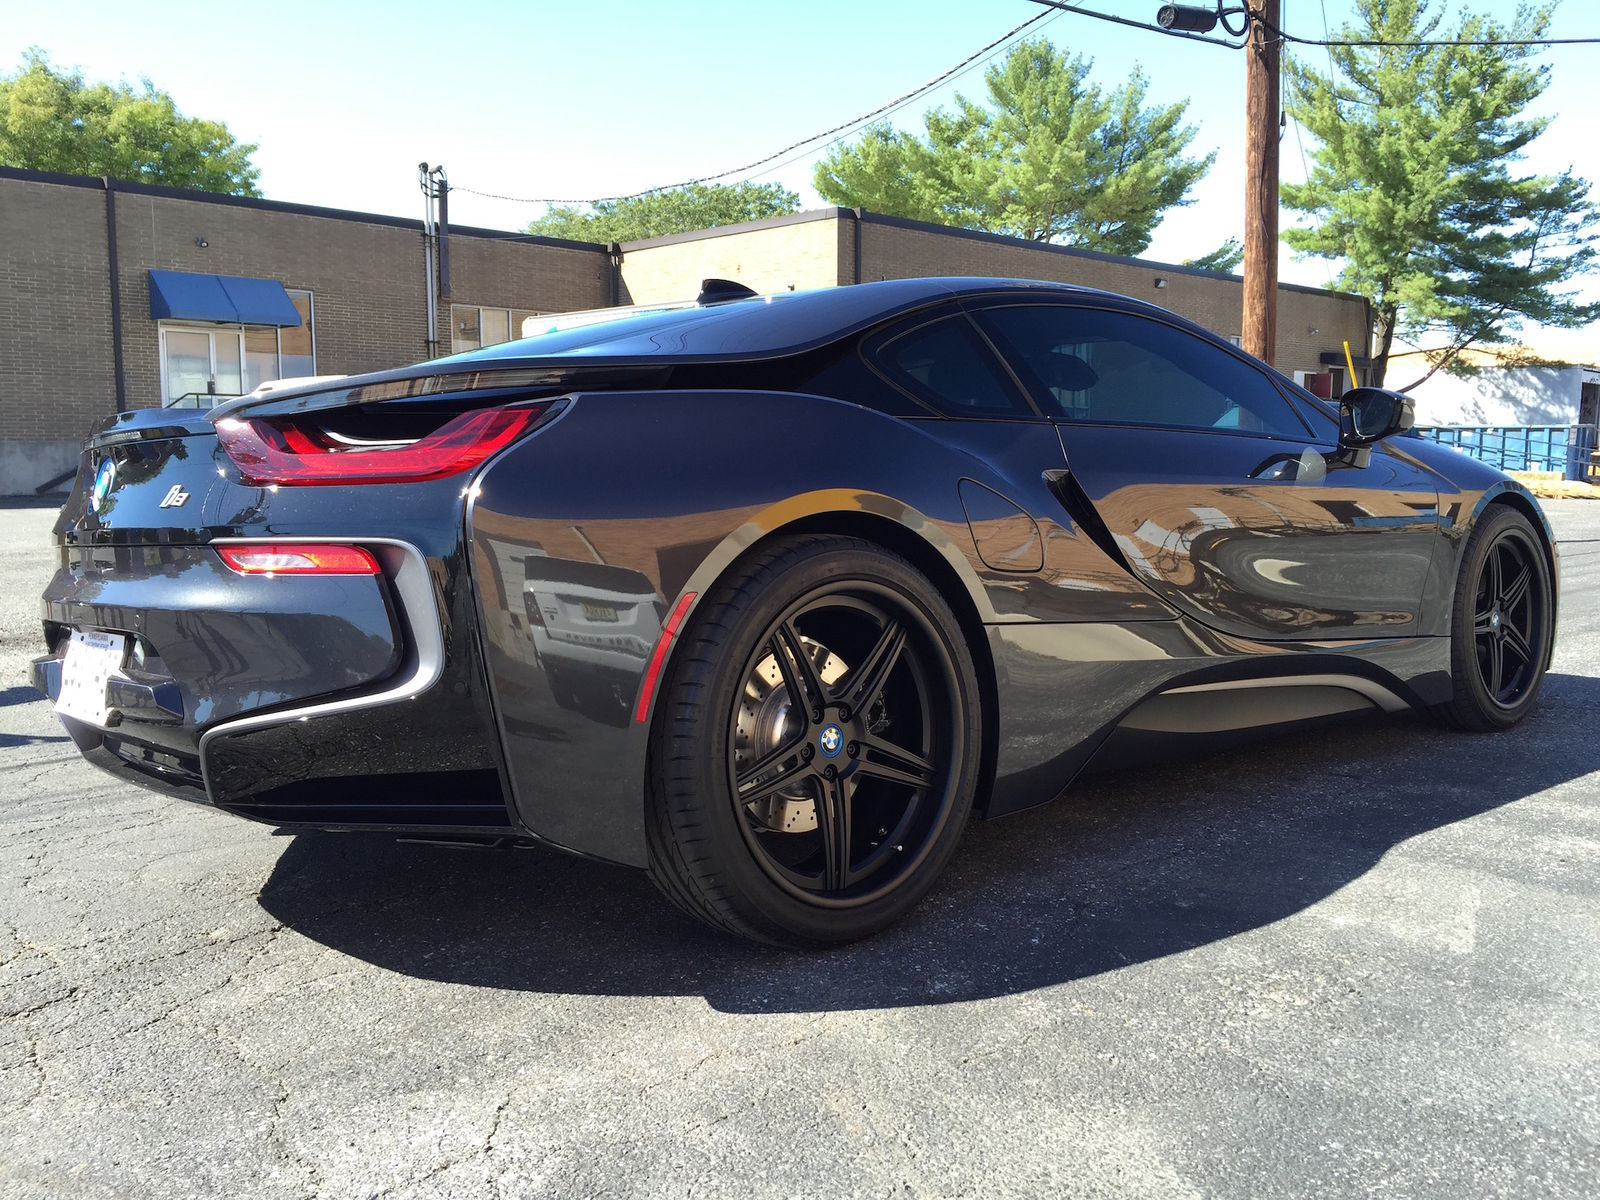 2015 BMW i8 | BMW i8 on Forgeline SC3C Wheels